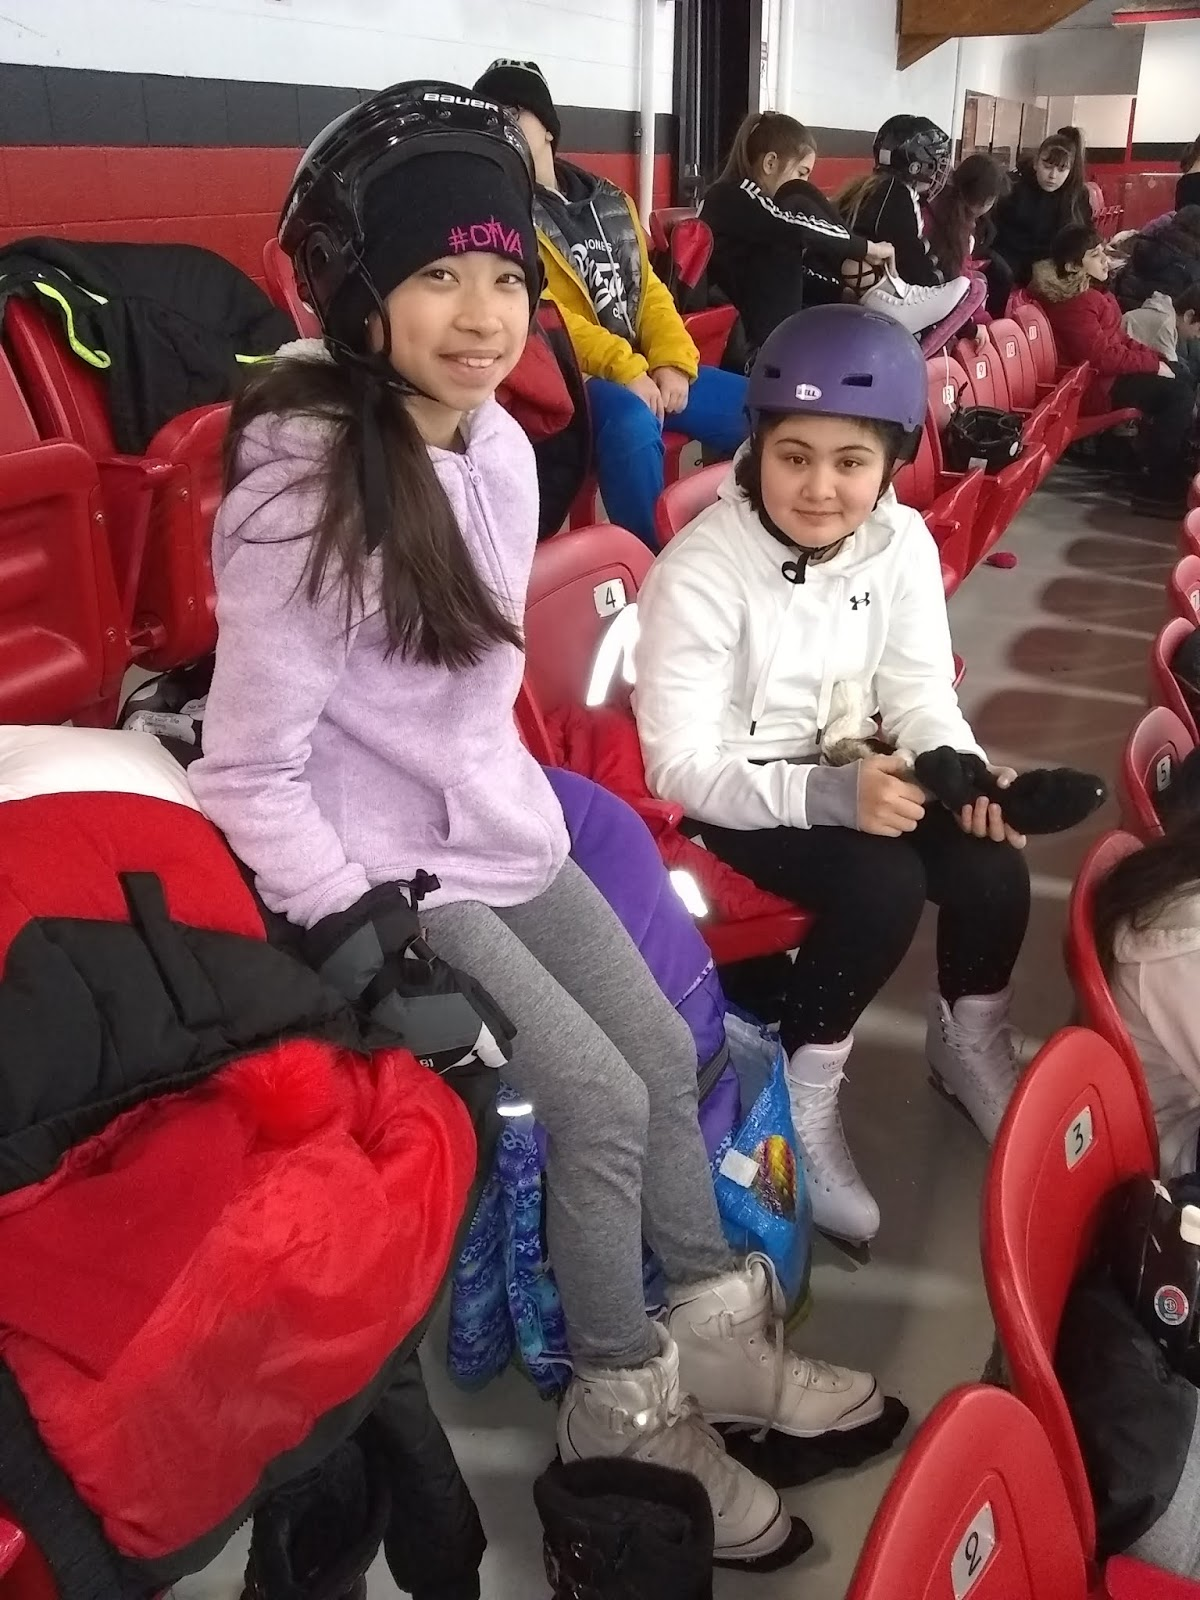 News From Miss Lopez Skating At Martin Brodeur Arena